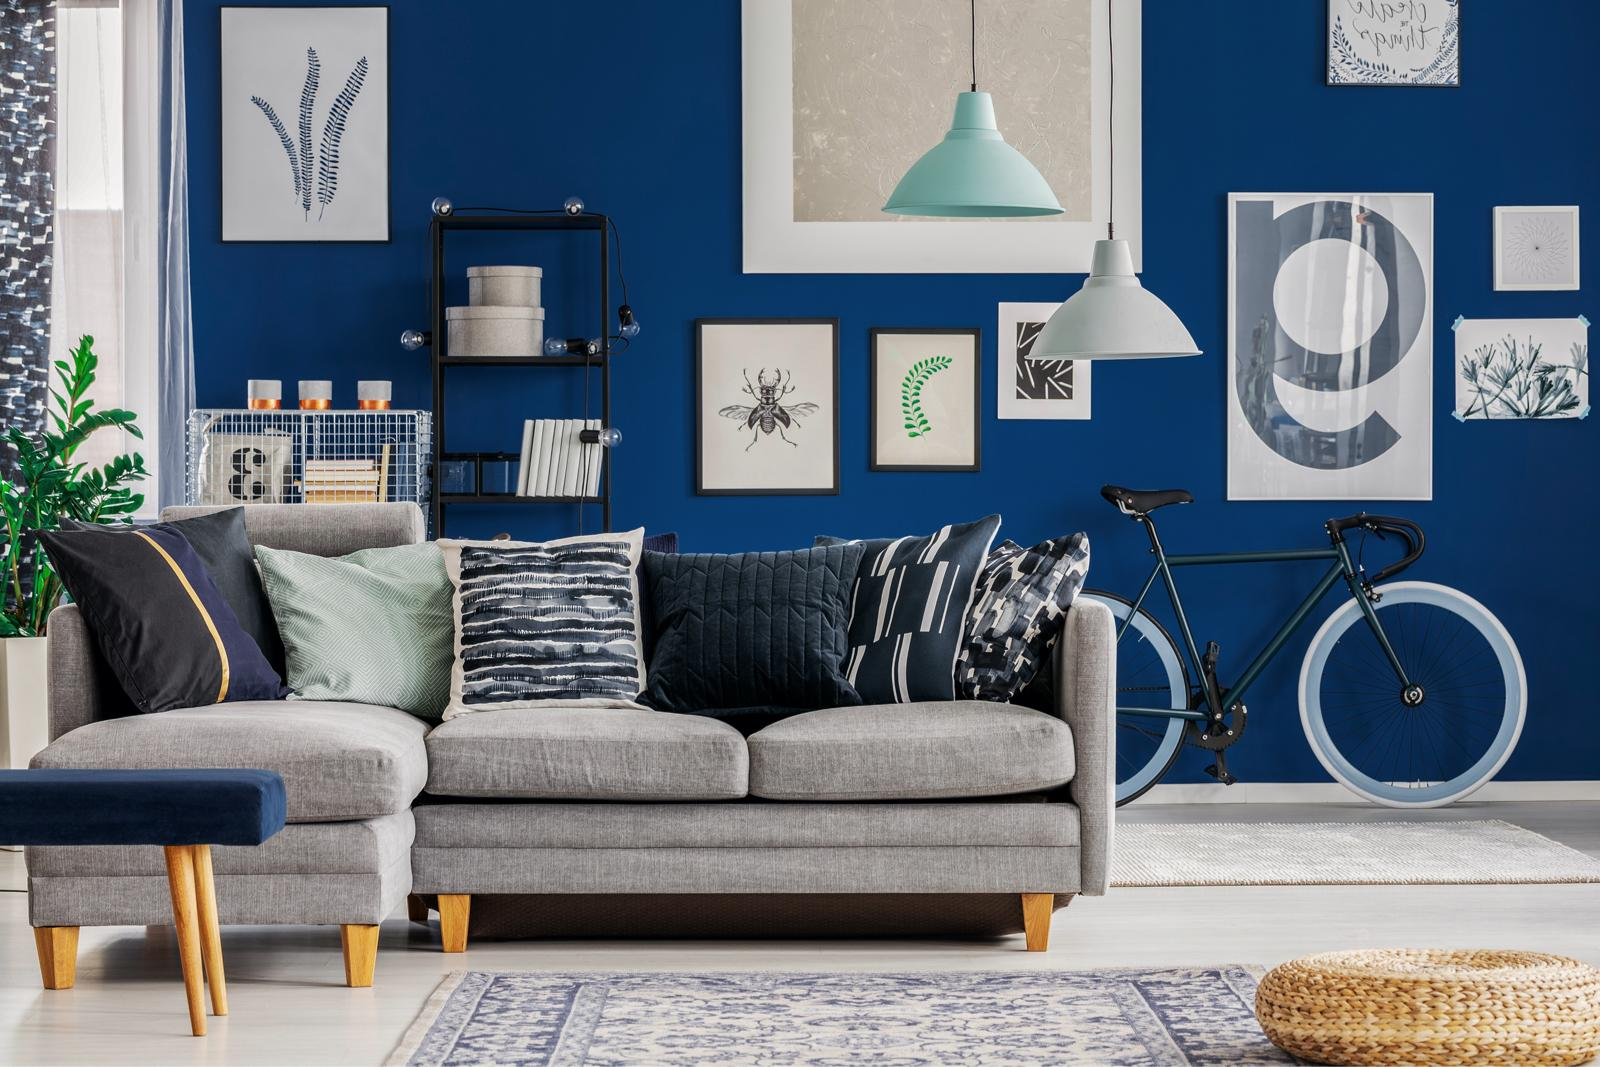 Maximalism Style And Why We Love It 10, Paneling Factory Of Virginia